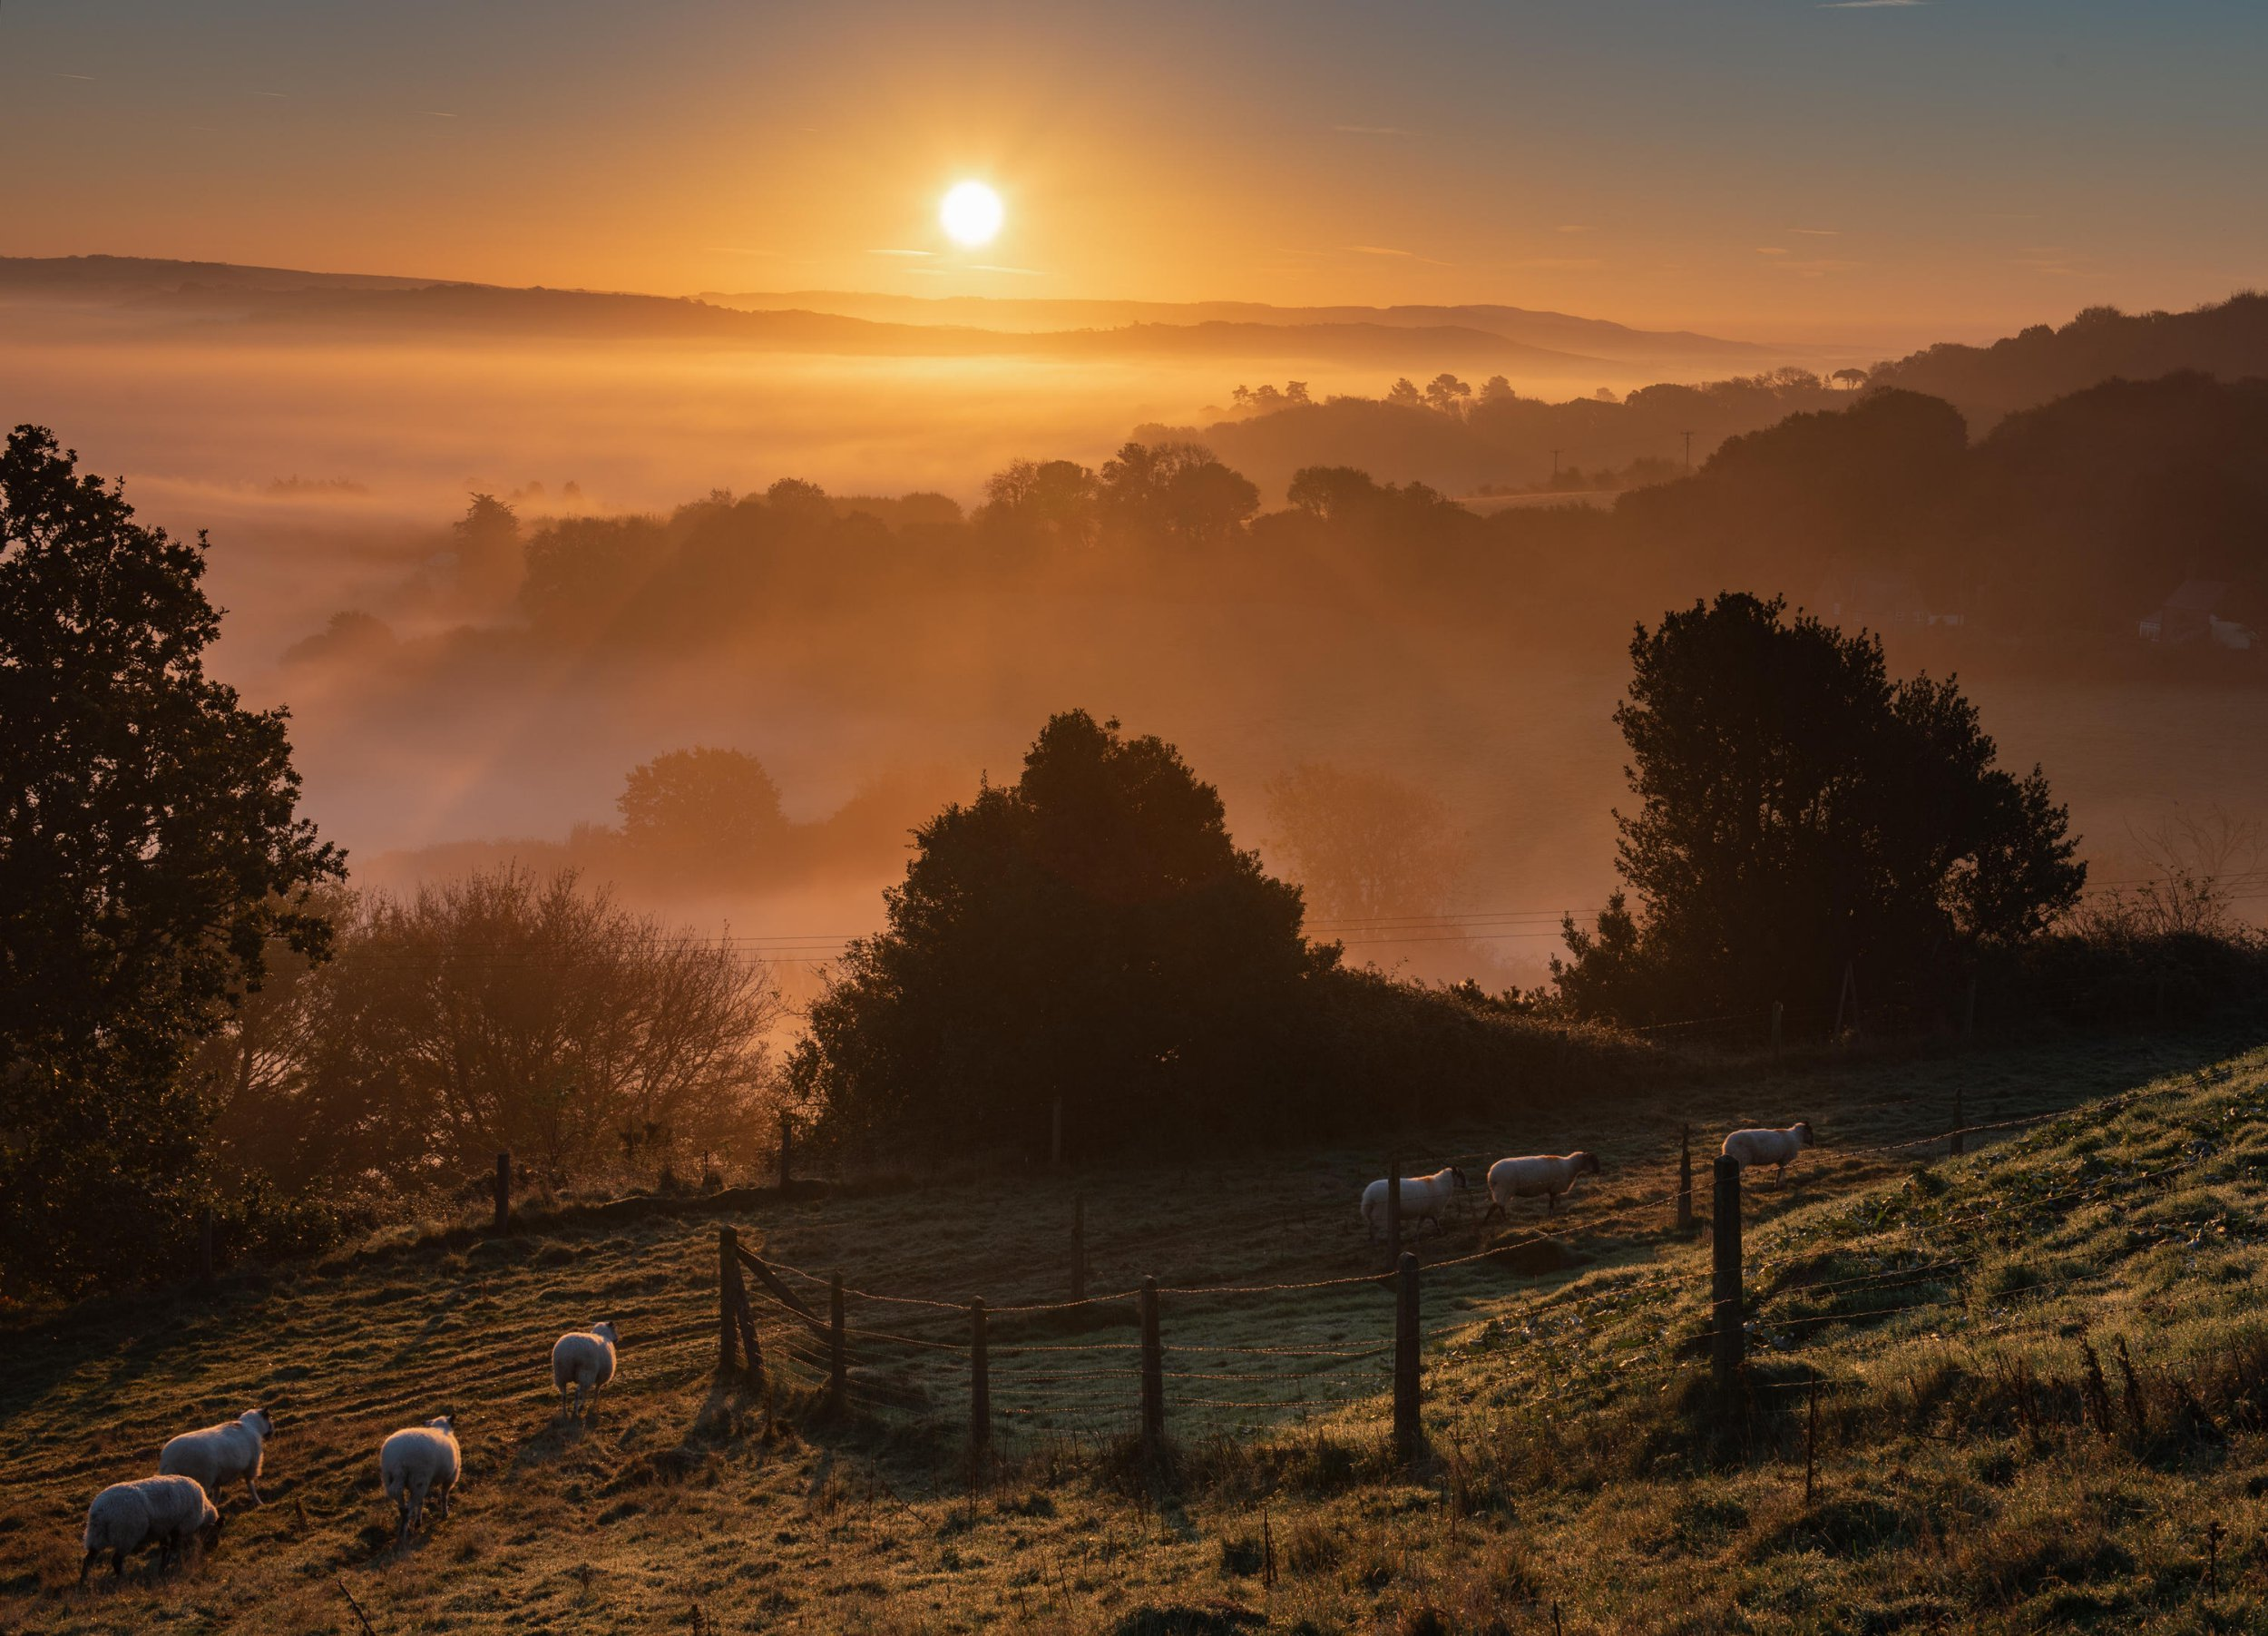 Alamy Live News. PXC204 Bridport, Dorset, UK. 21st October 2018. UK Weather: Sheep at sunrise on a misty morning in rural West Dorset. Credit: Celia McMahon/Alamy Live News This is an Alamy Live News image and may not be part of your current Alamy deal . If you are unsure, please contact our sales team to check.